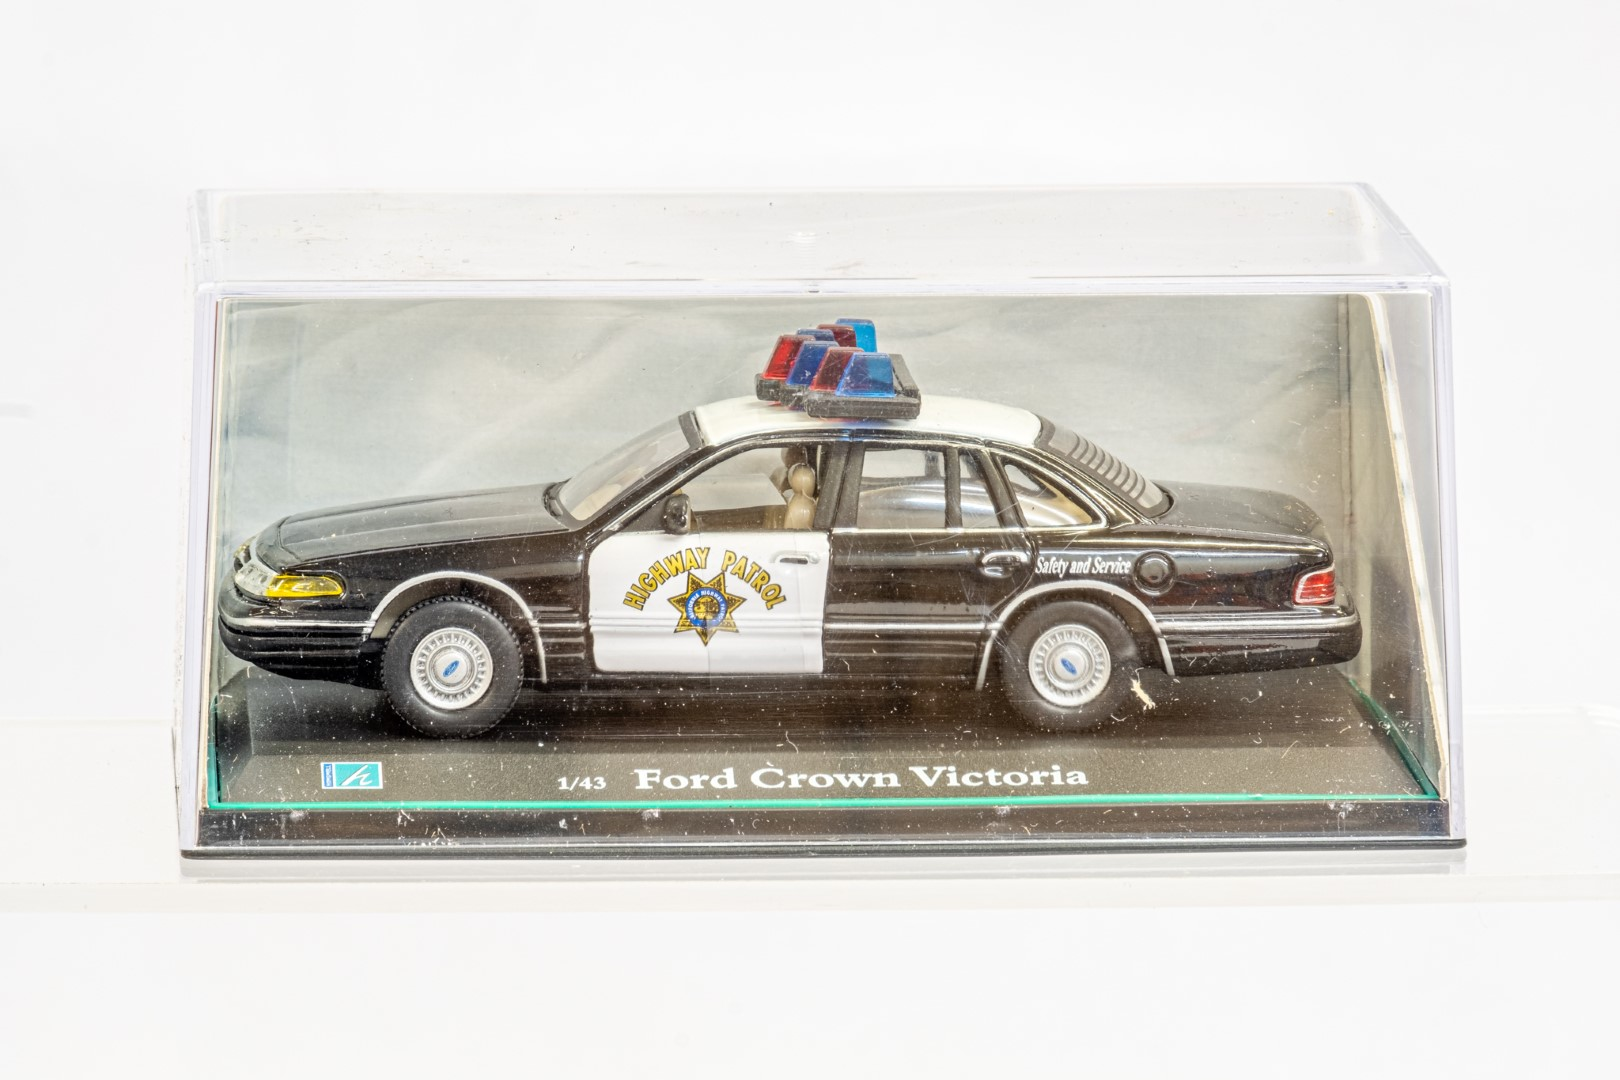 2 x American Police Cars - Image 5 of 12